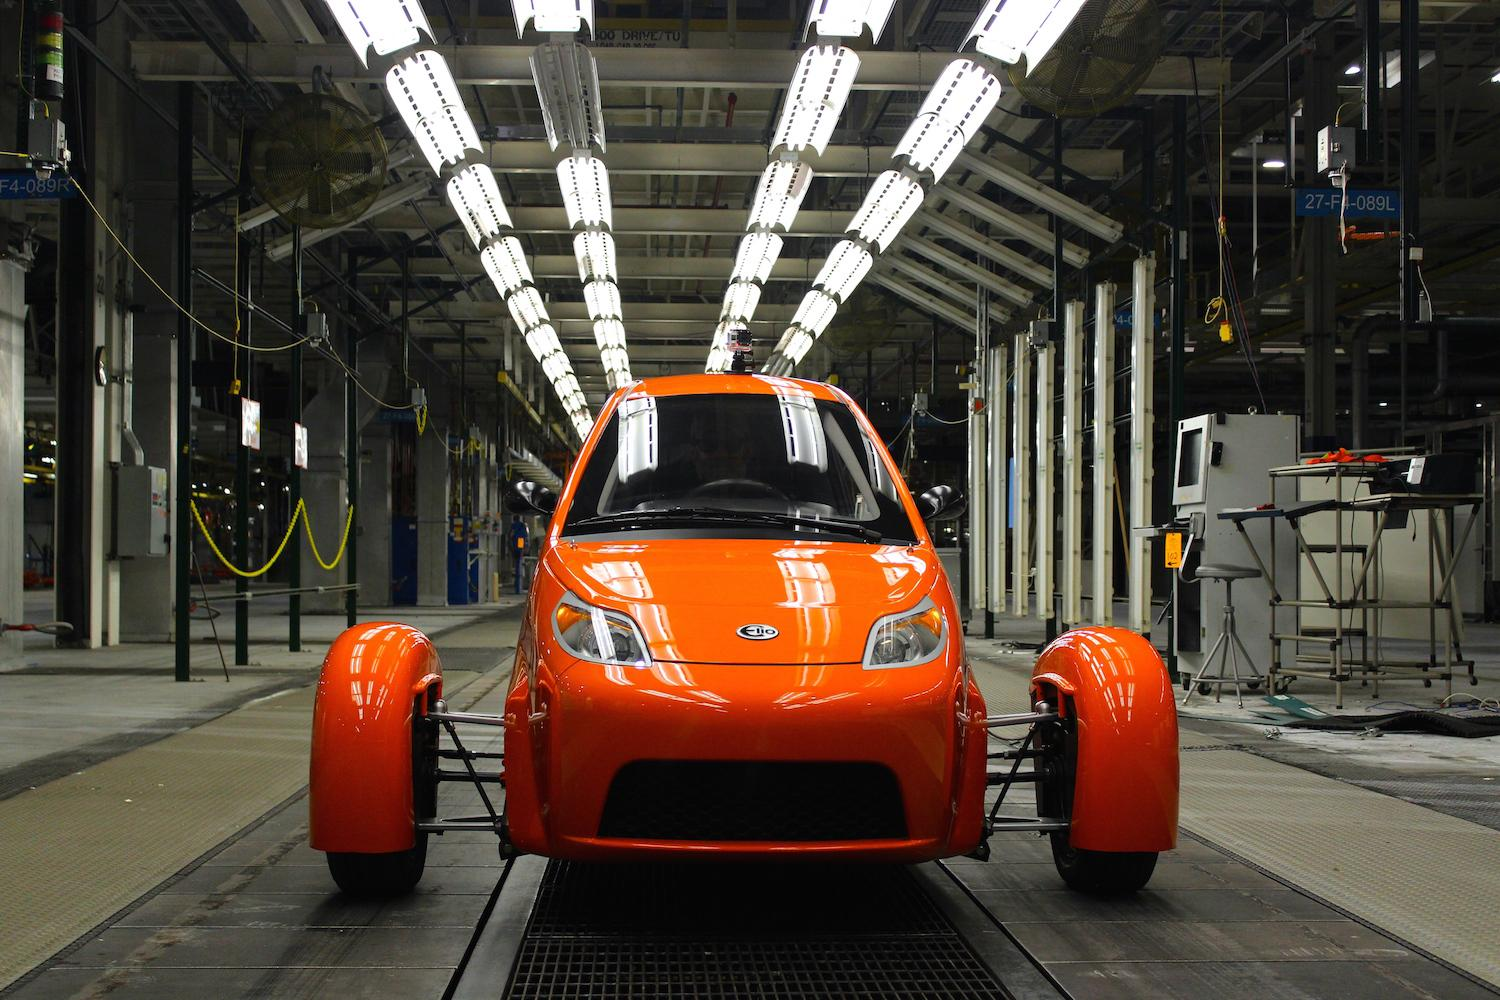 Elio Motors Production Pushed To 2016 Due To Finance Woes